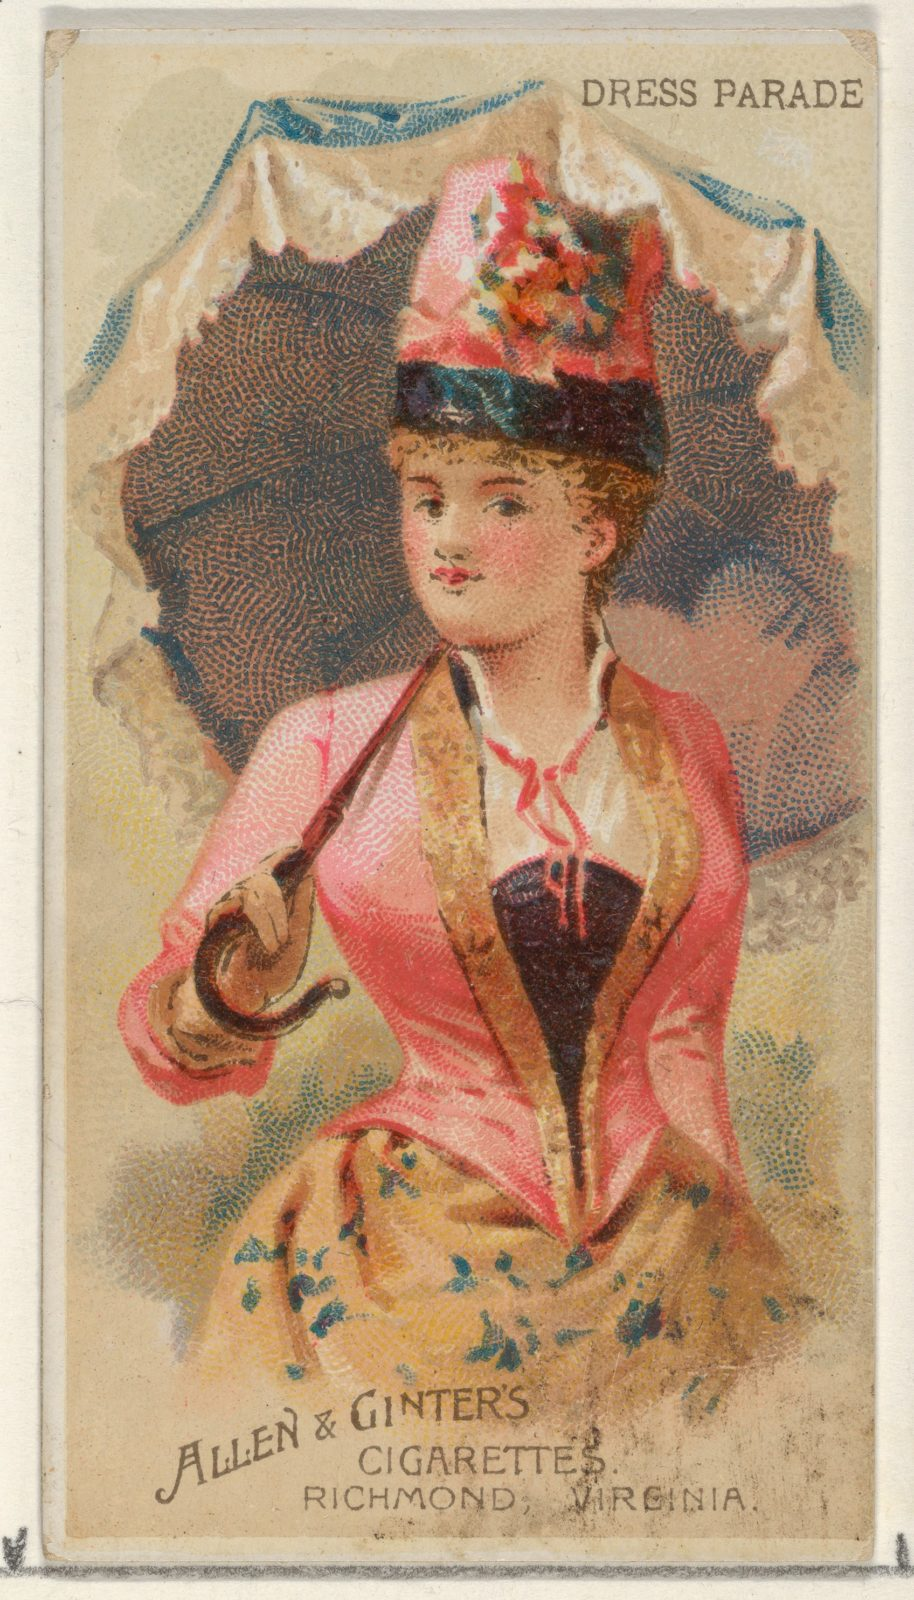 Dress Parade, from the Parasol Drills series (N18) for Allen & Ginter Cigarettes Brands